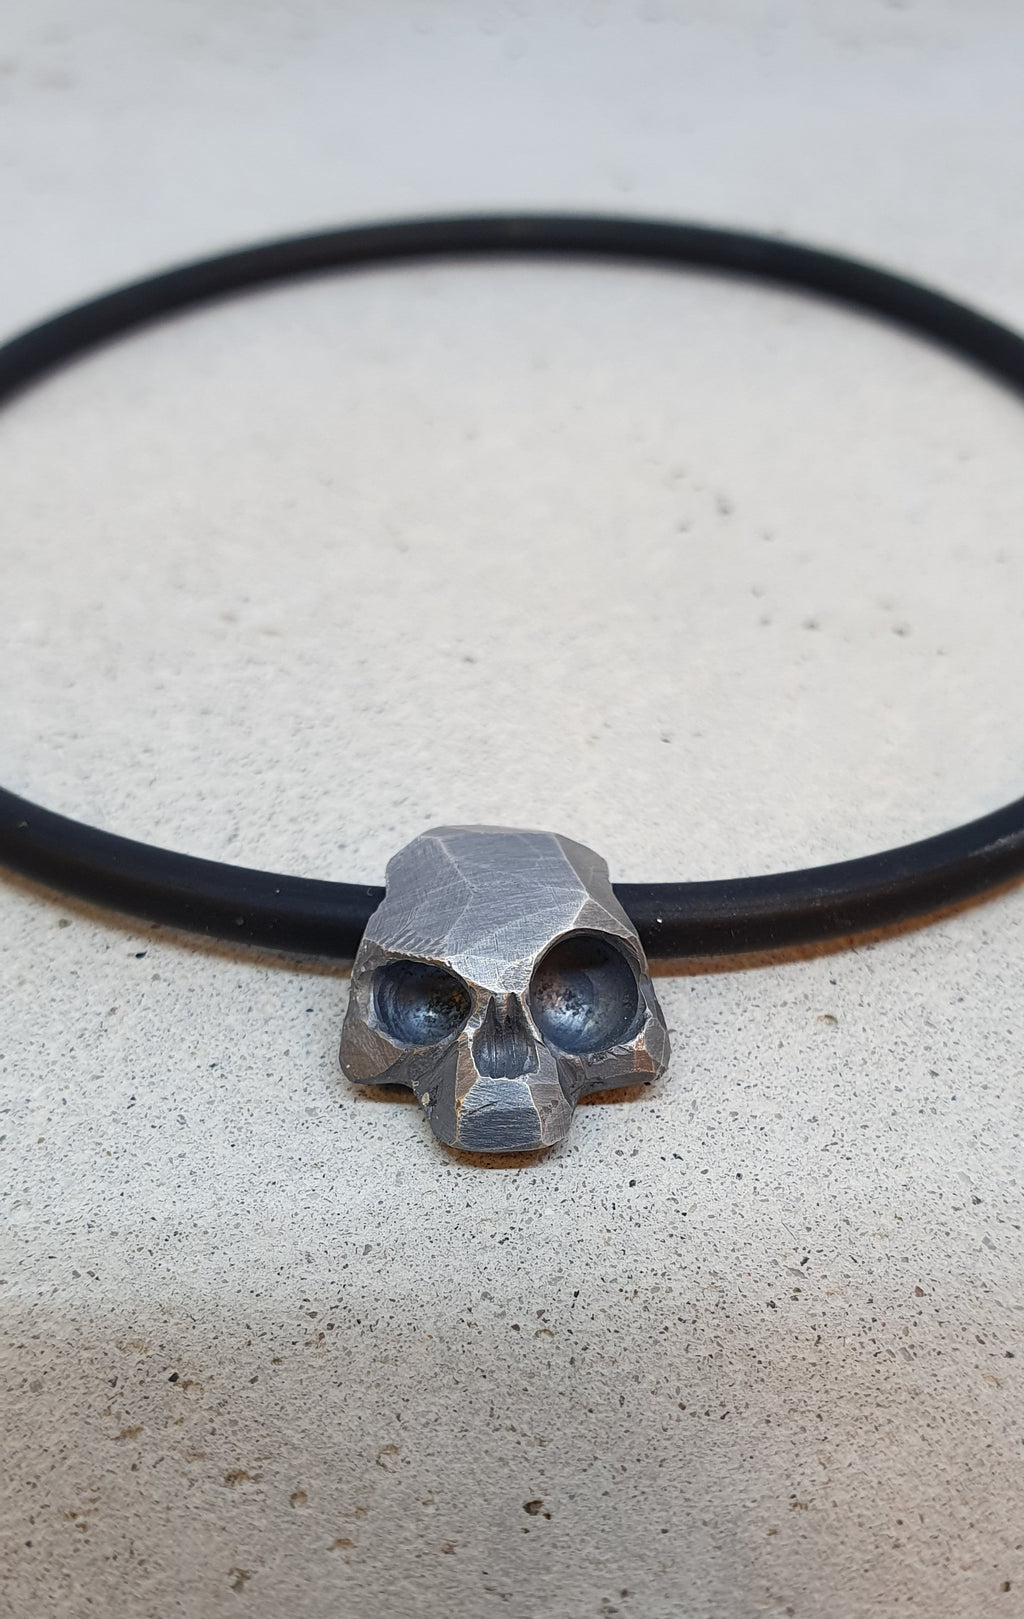 André Normann Memento Vivere Skull Bracelet | Norwegian Jewelry designer and goldsmith in Østfold Norway